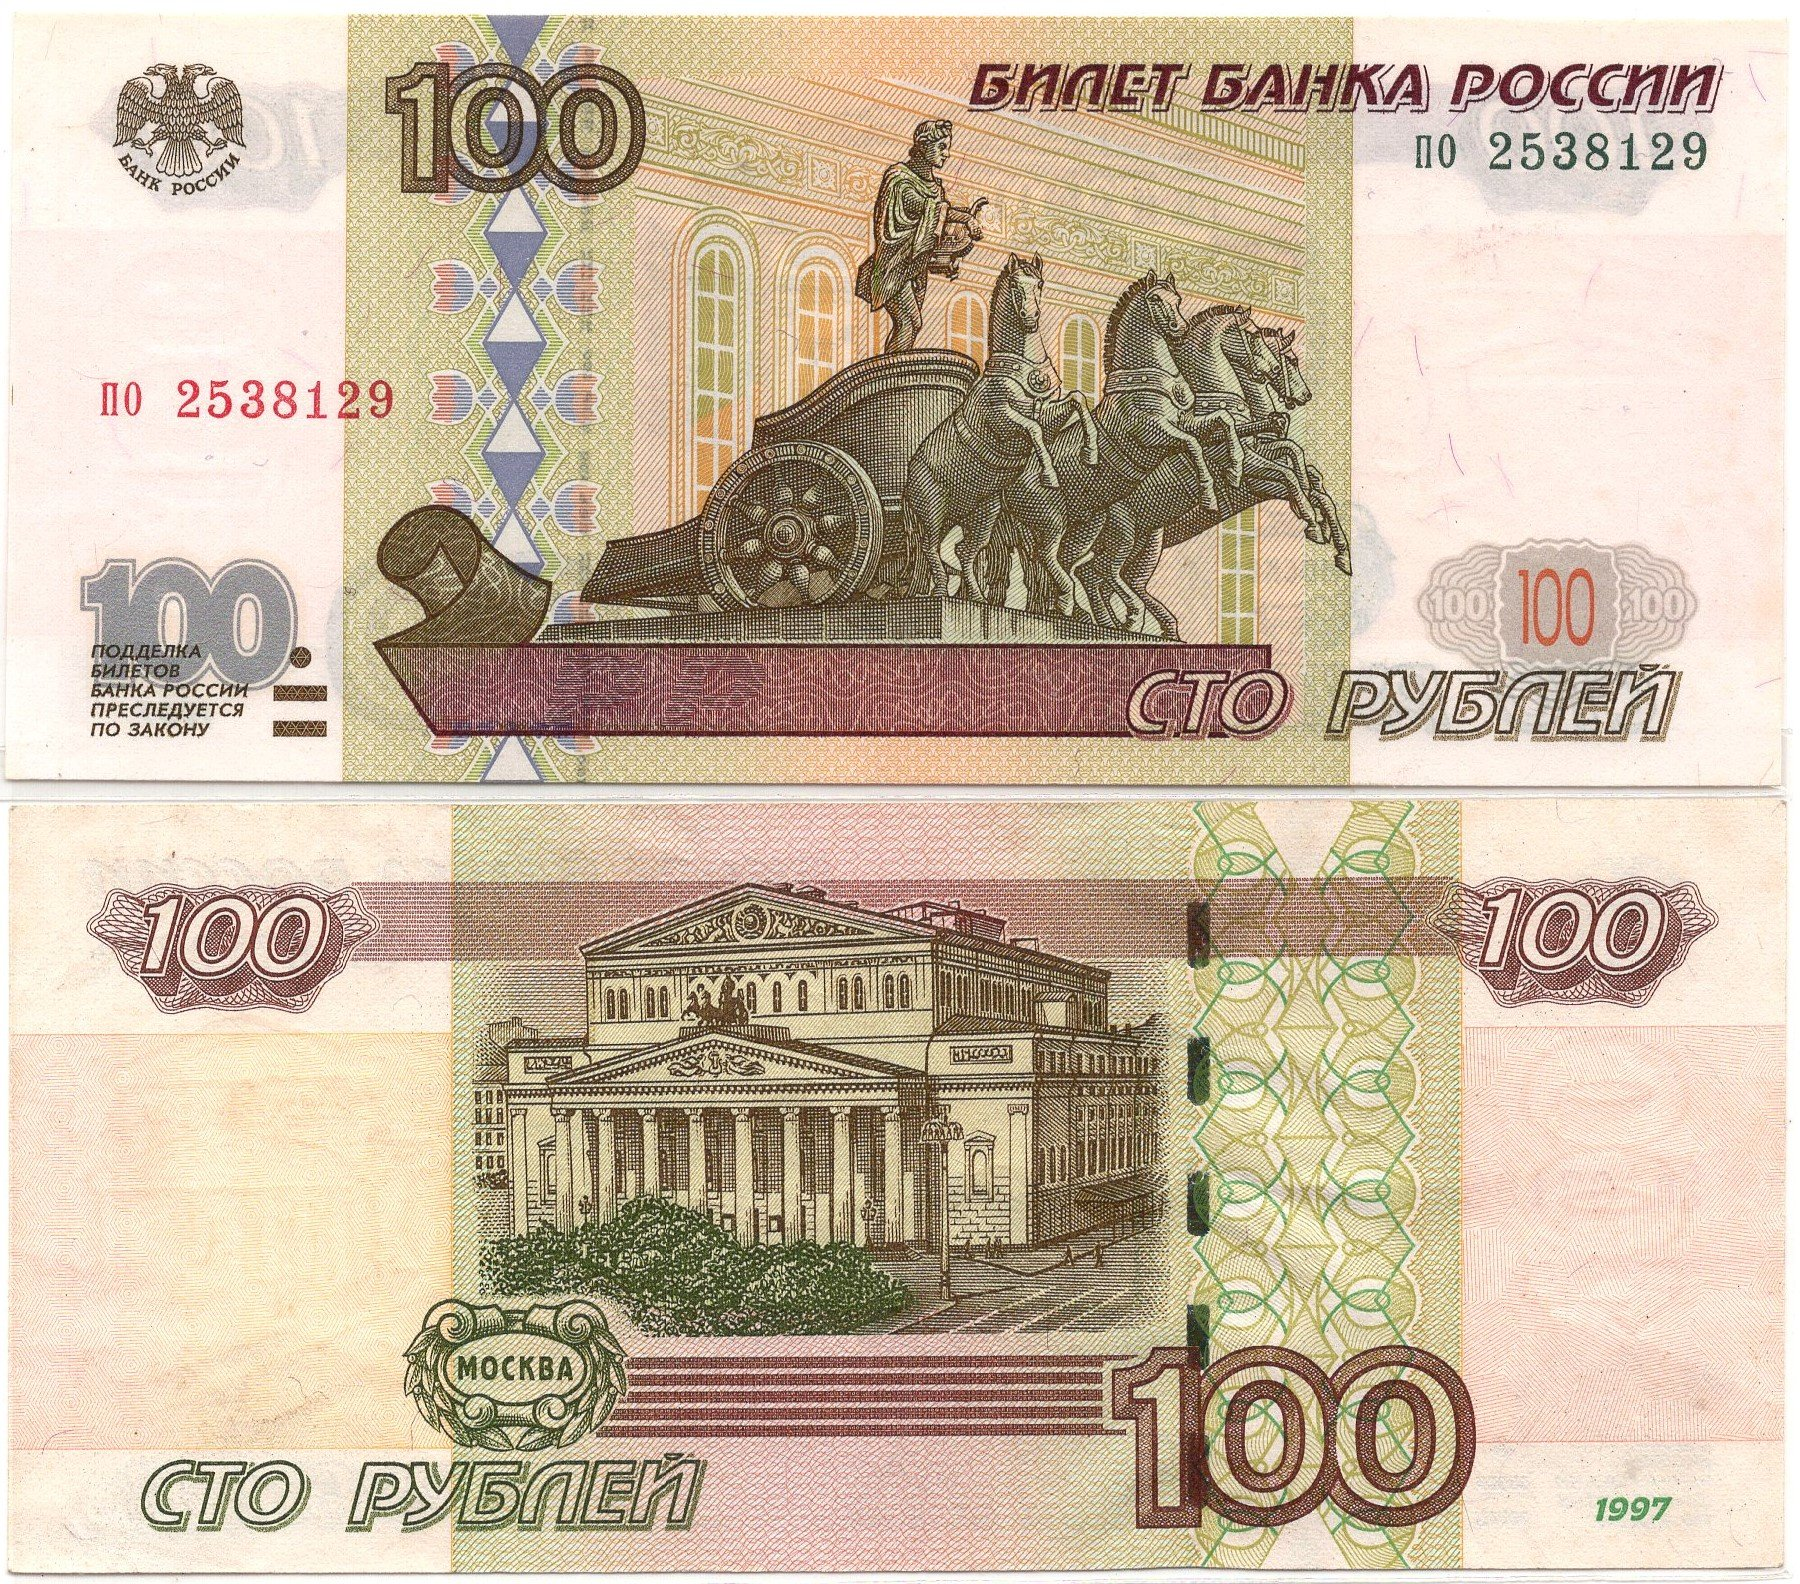 Russia 100 roubles 1997 banknote for sale